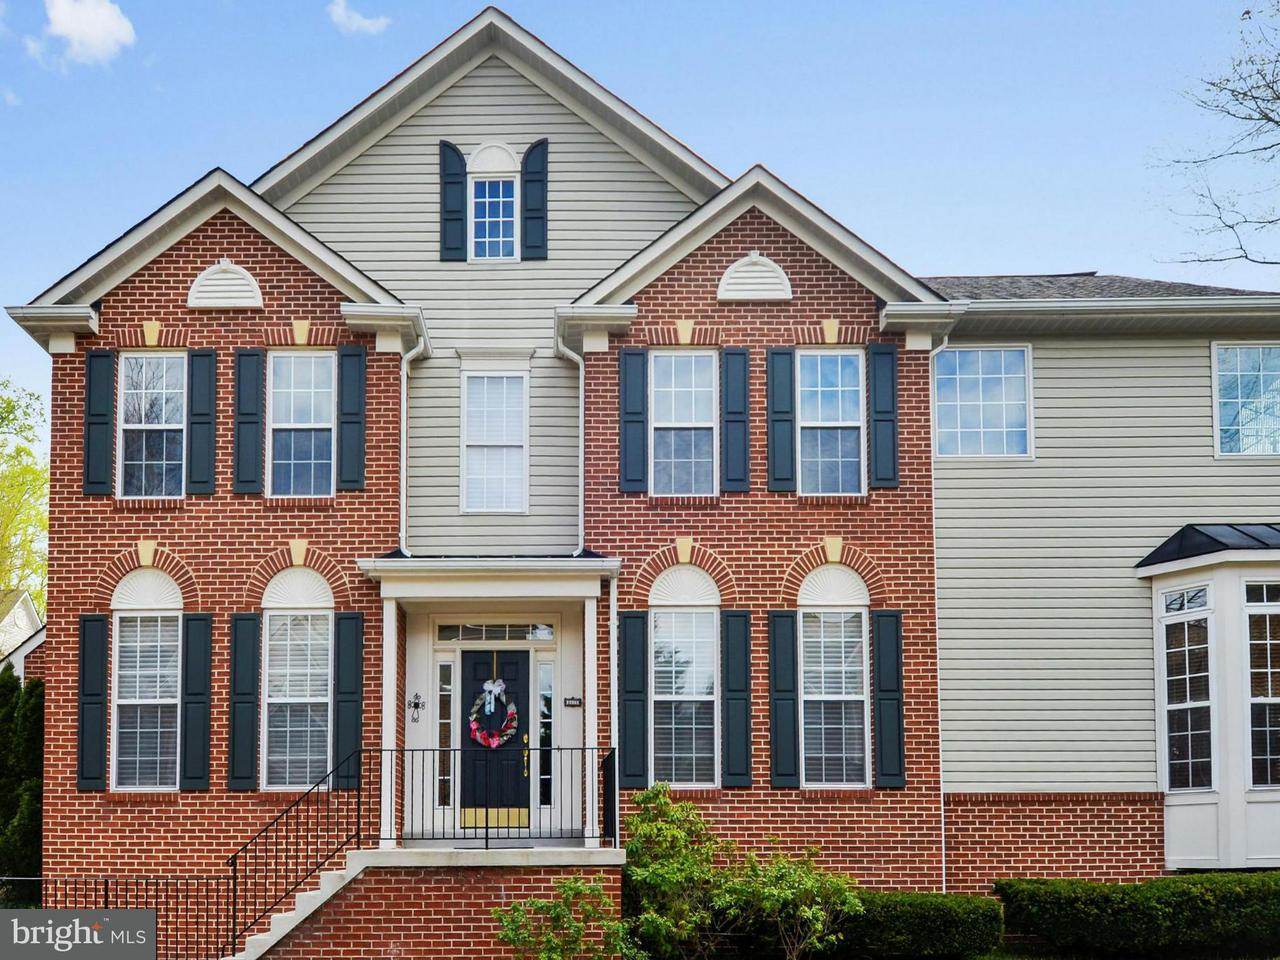 Casa Unifamiliar por un Venta en 3453 Barrister'S Keepe Circle 3453 Barrister'S Keepe Circle Fairfax, Virginia 22031 Estados Unidos